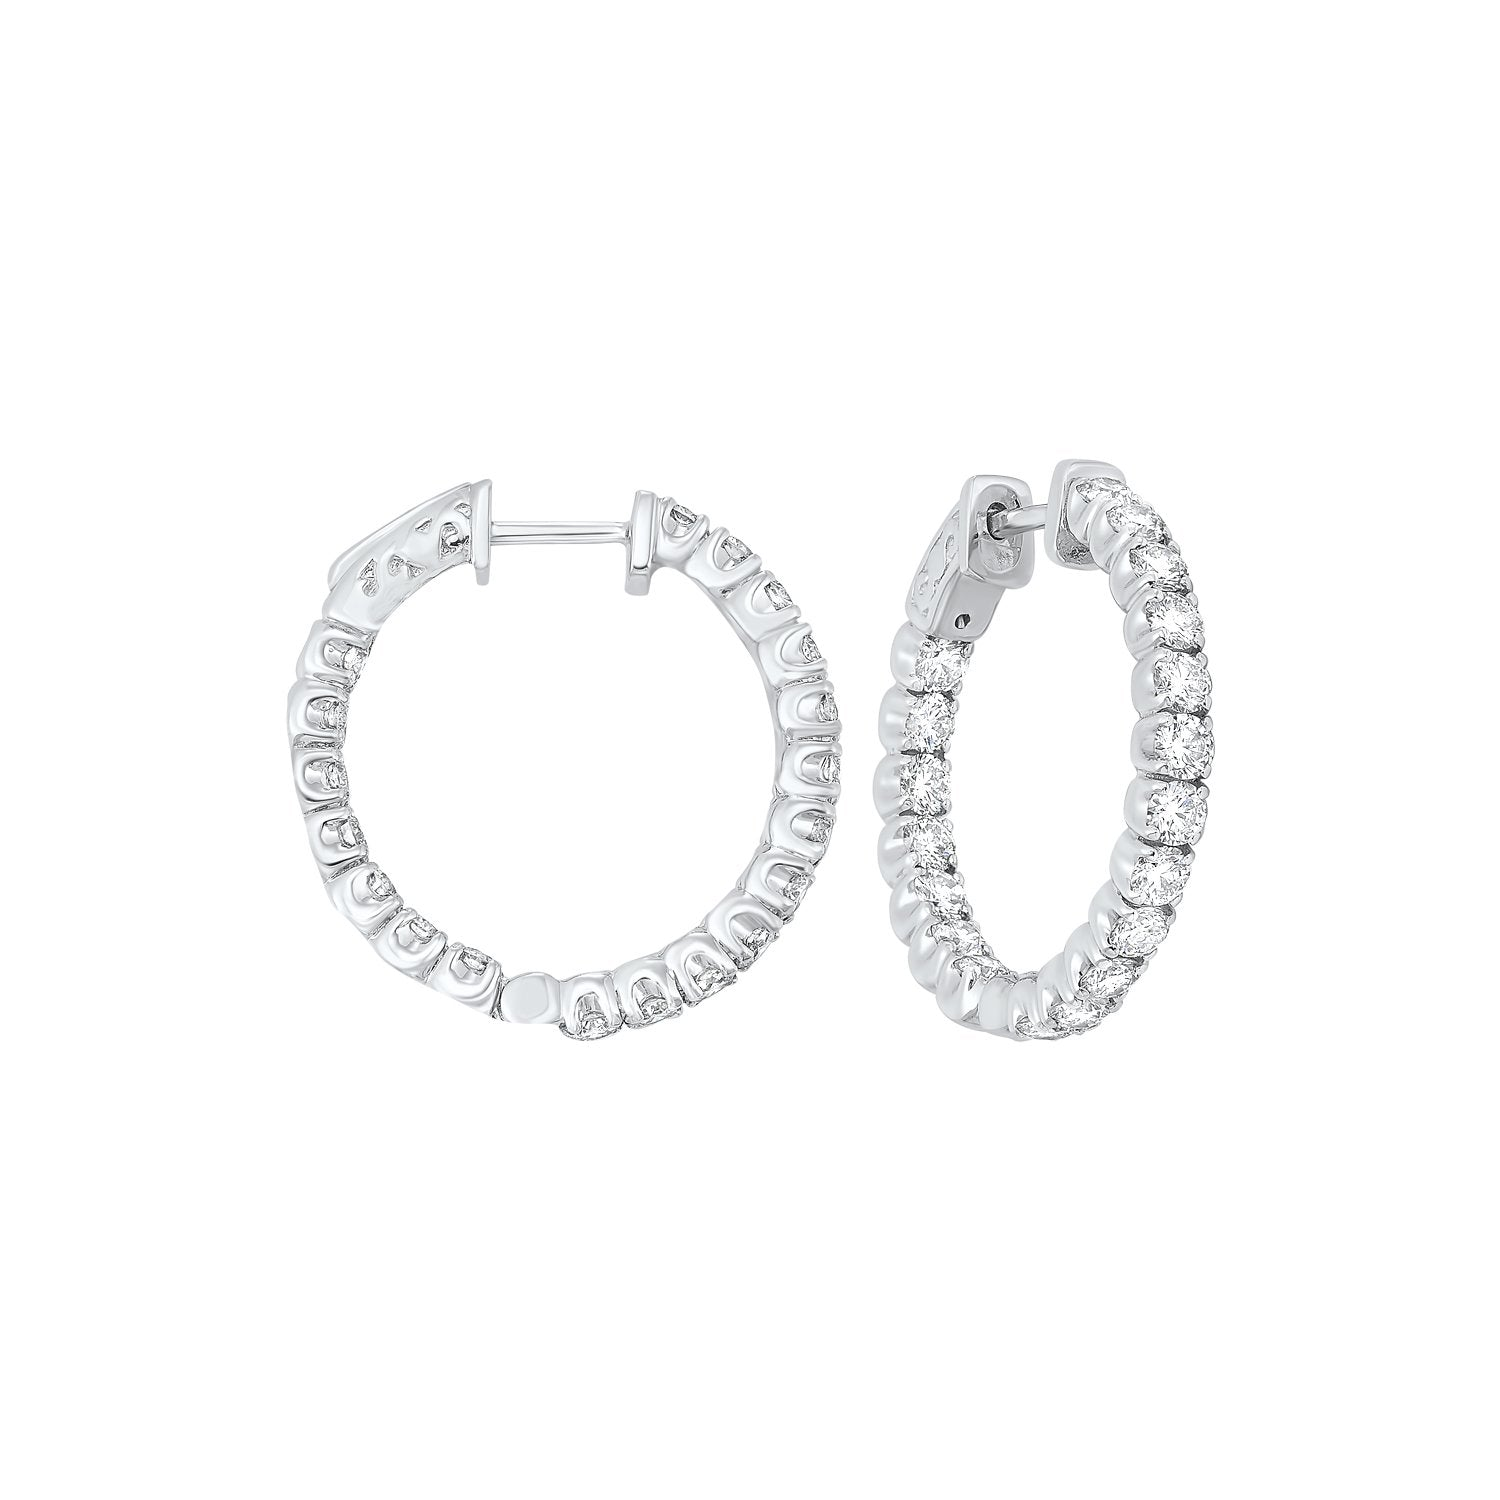 In-Out Prong Set Diamond Hoop Earrings in 14K White Gold  (3 ct. tw.)